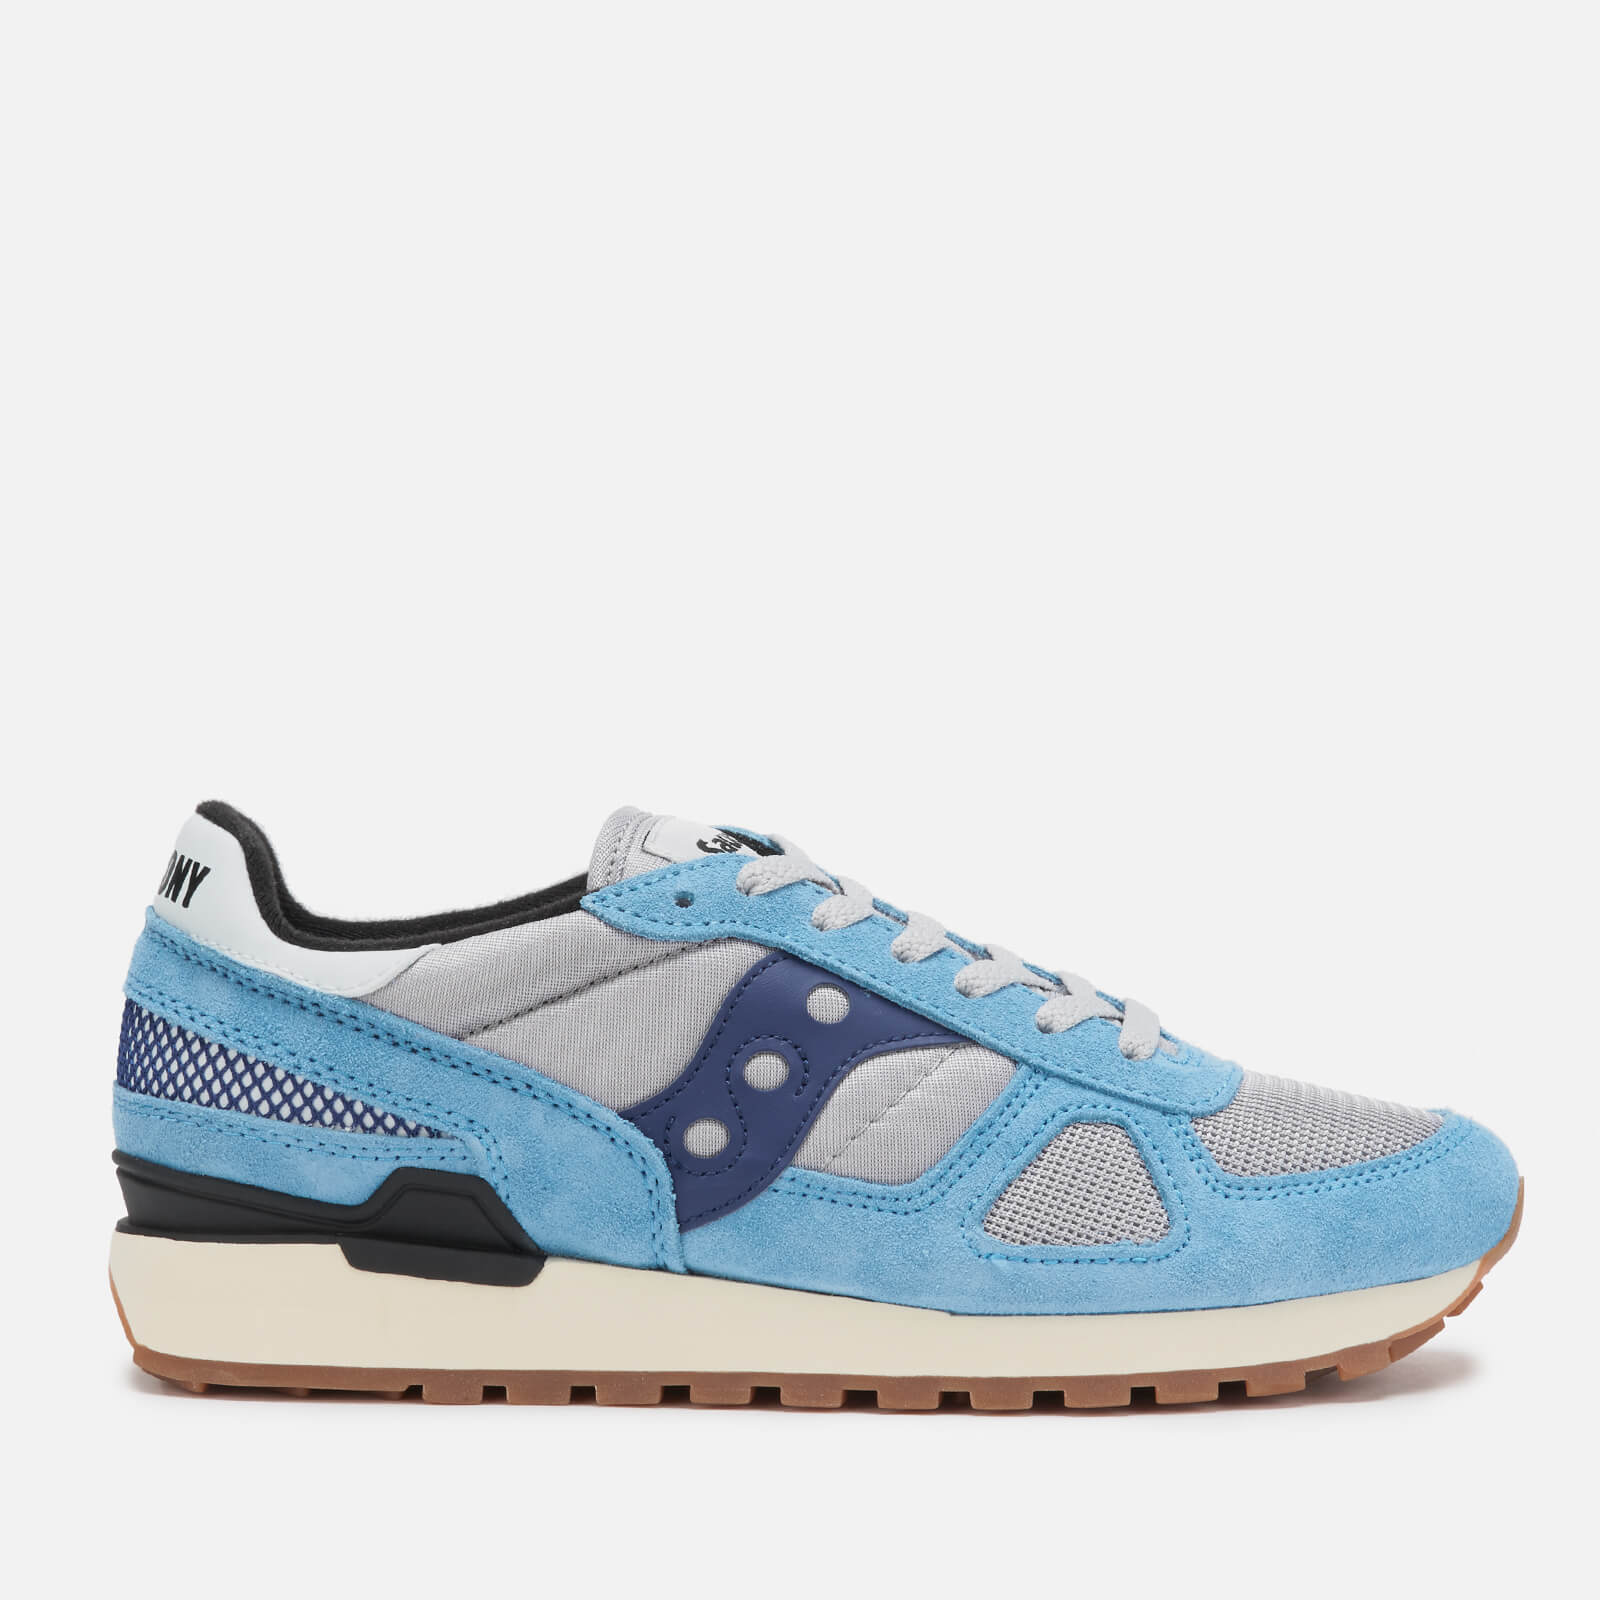 info for 19e57 6ceb9 Saucony Men s Shadow Original Vintage Trainers - Blue Grey Navy - Free UK  Delivery over £50